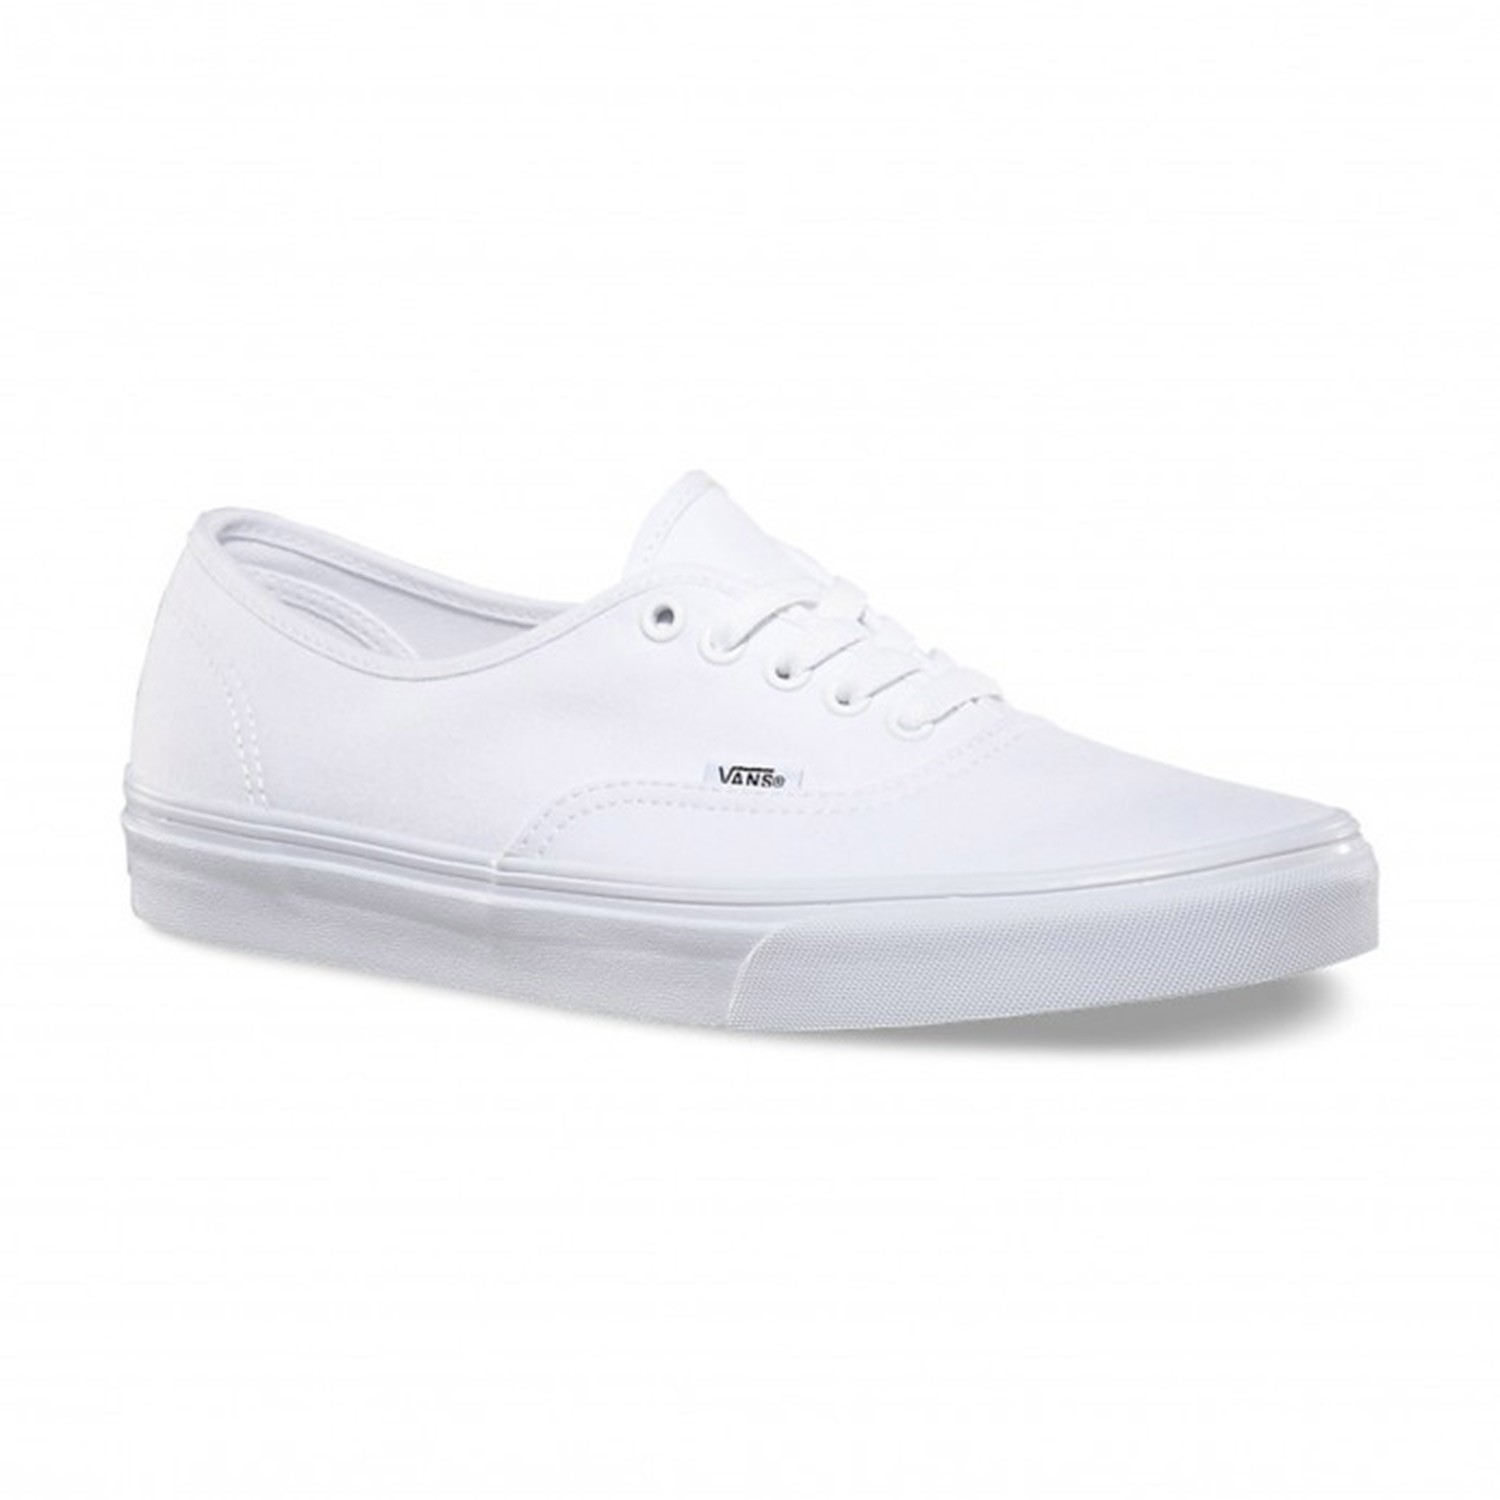 Tenisky Vans Authentic true white